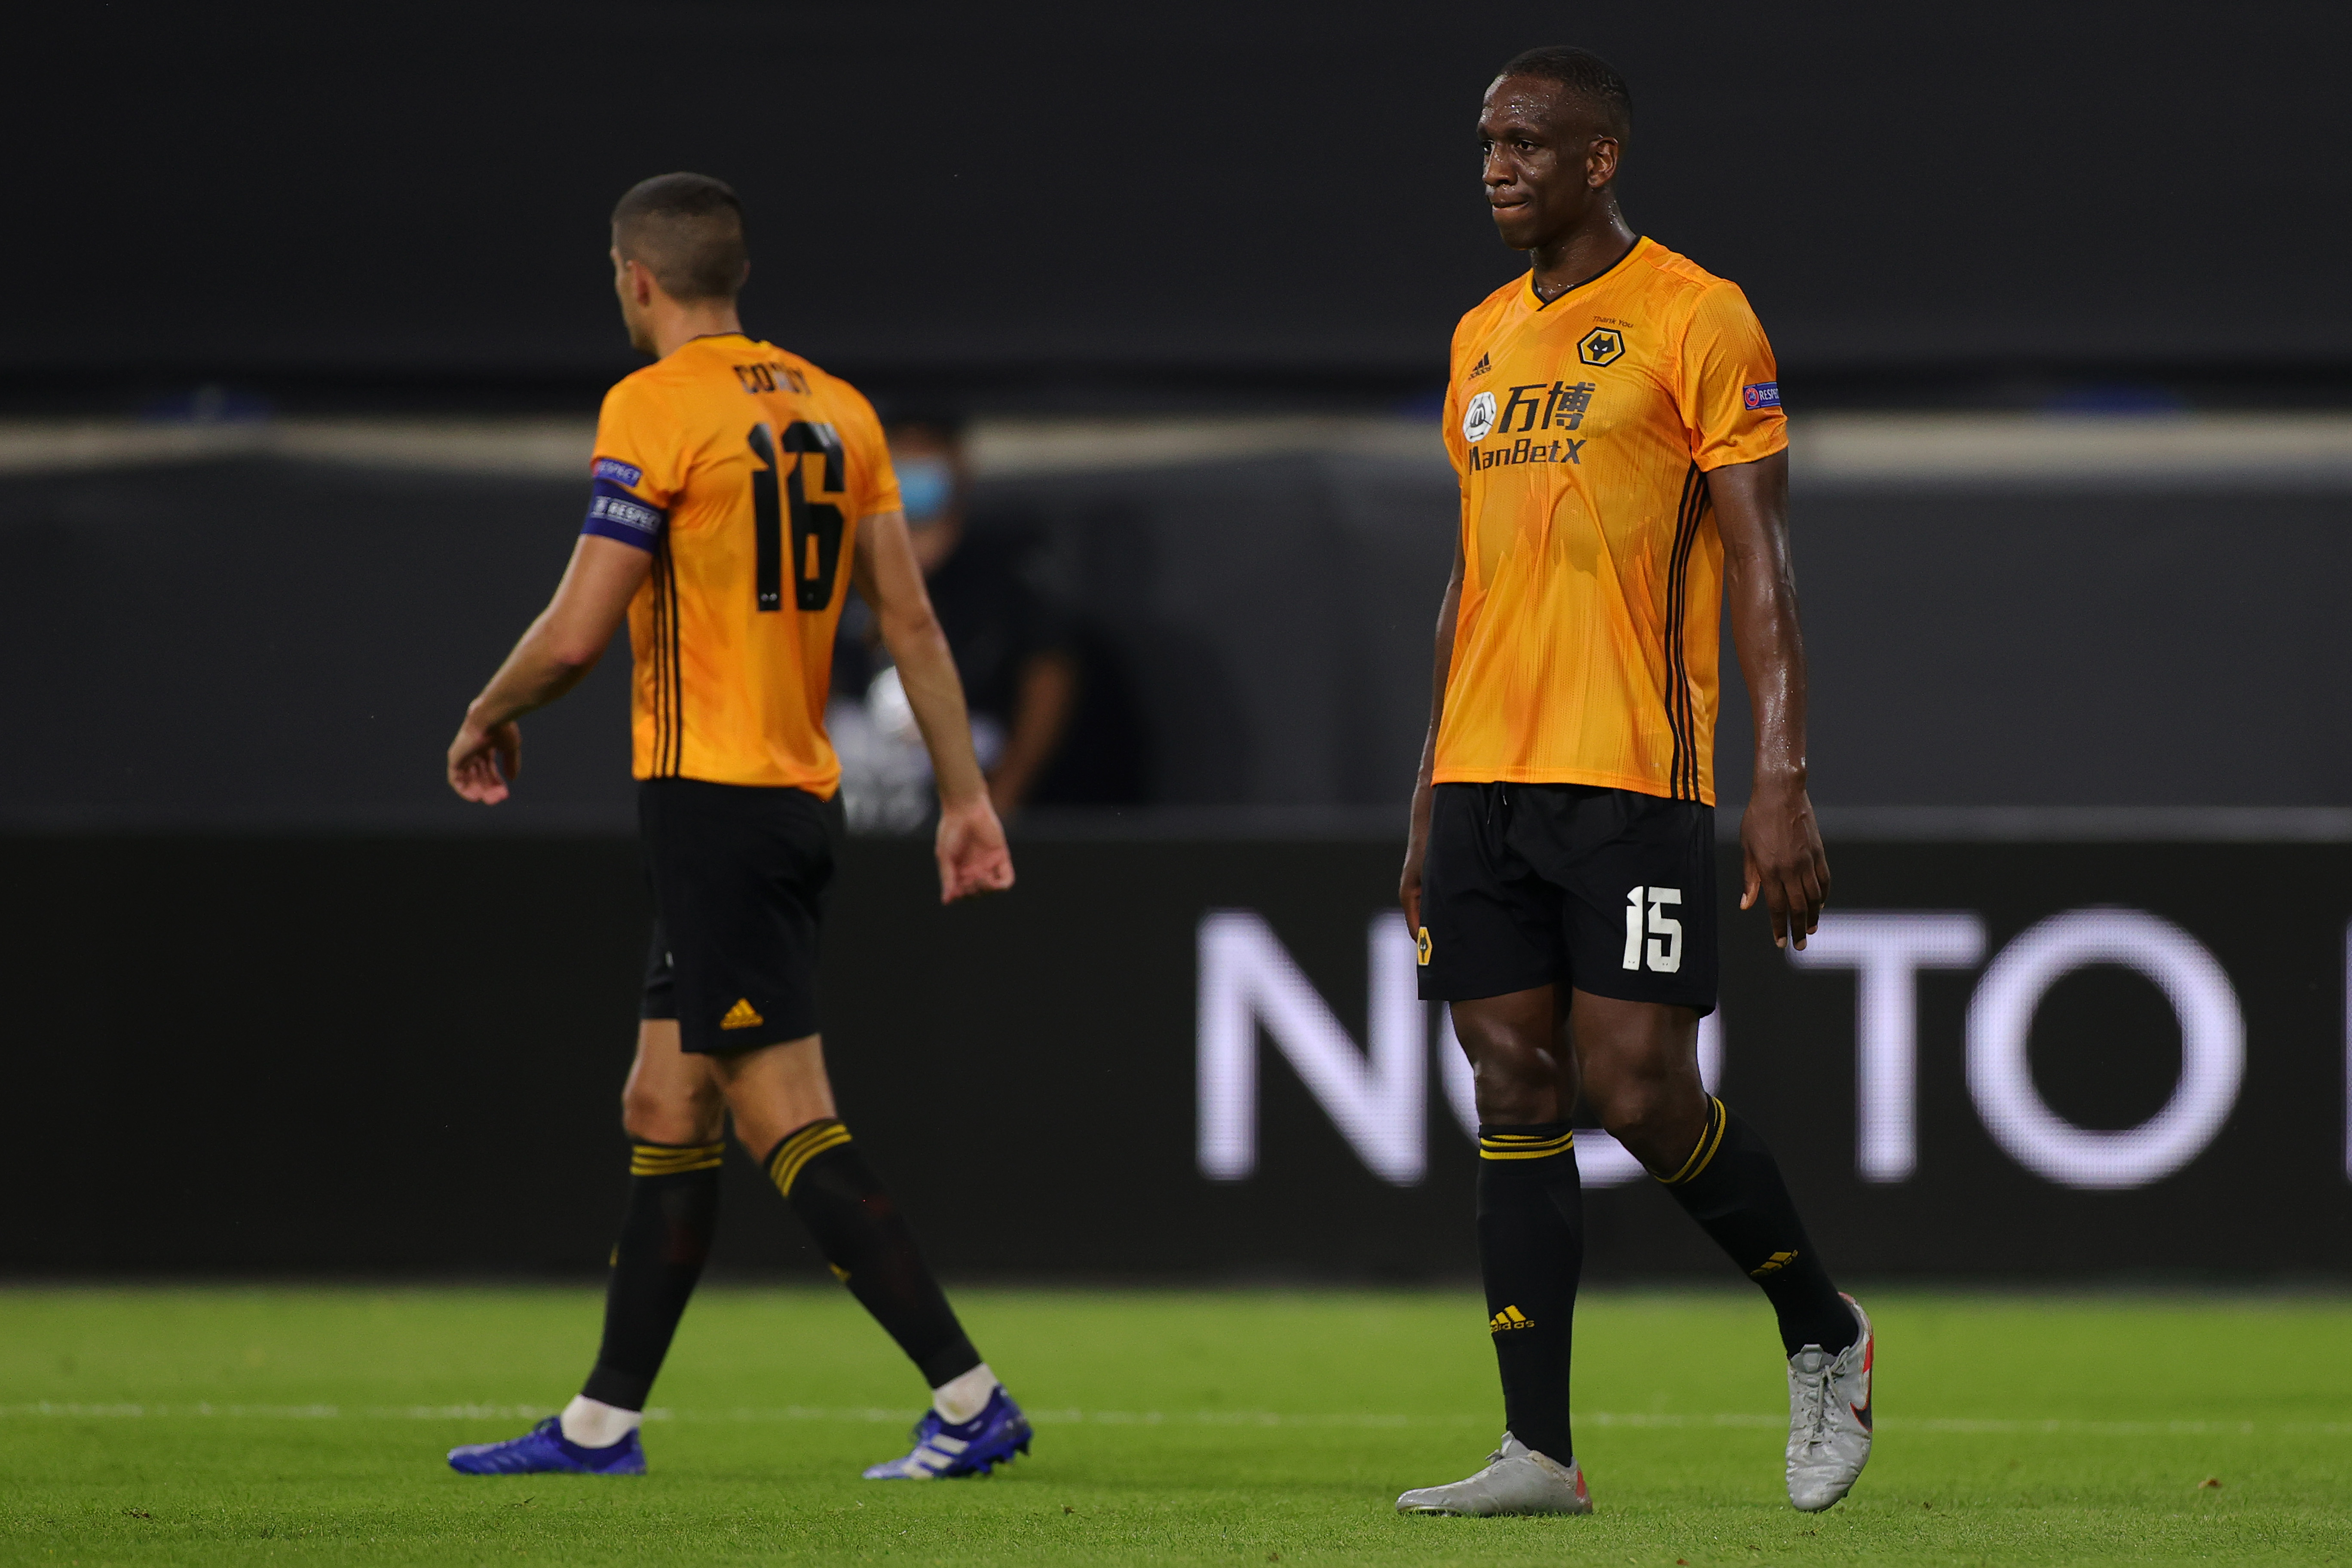 Wolverhampton Wanderers player ratings vs West Brom (Wolves players are seen in the photo)